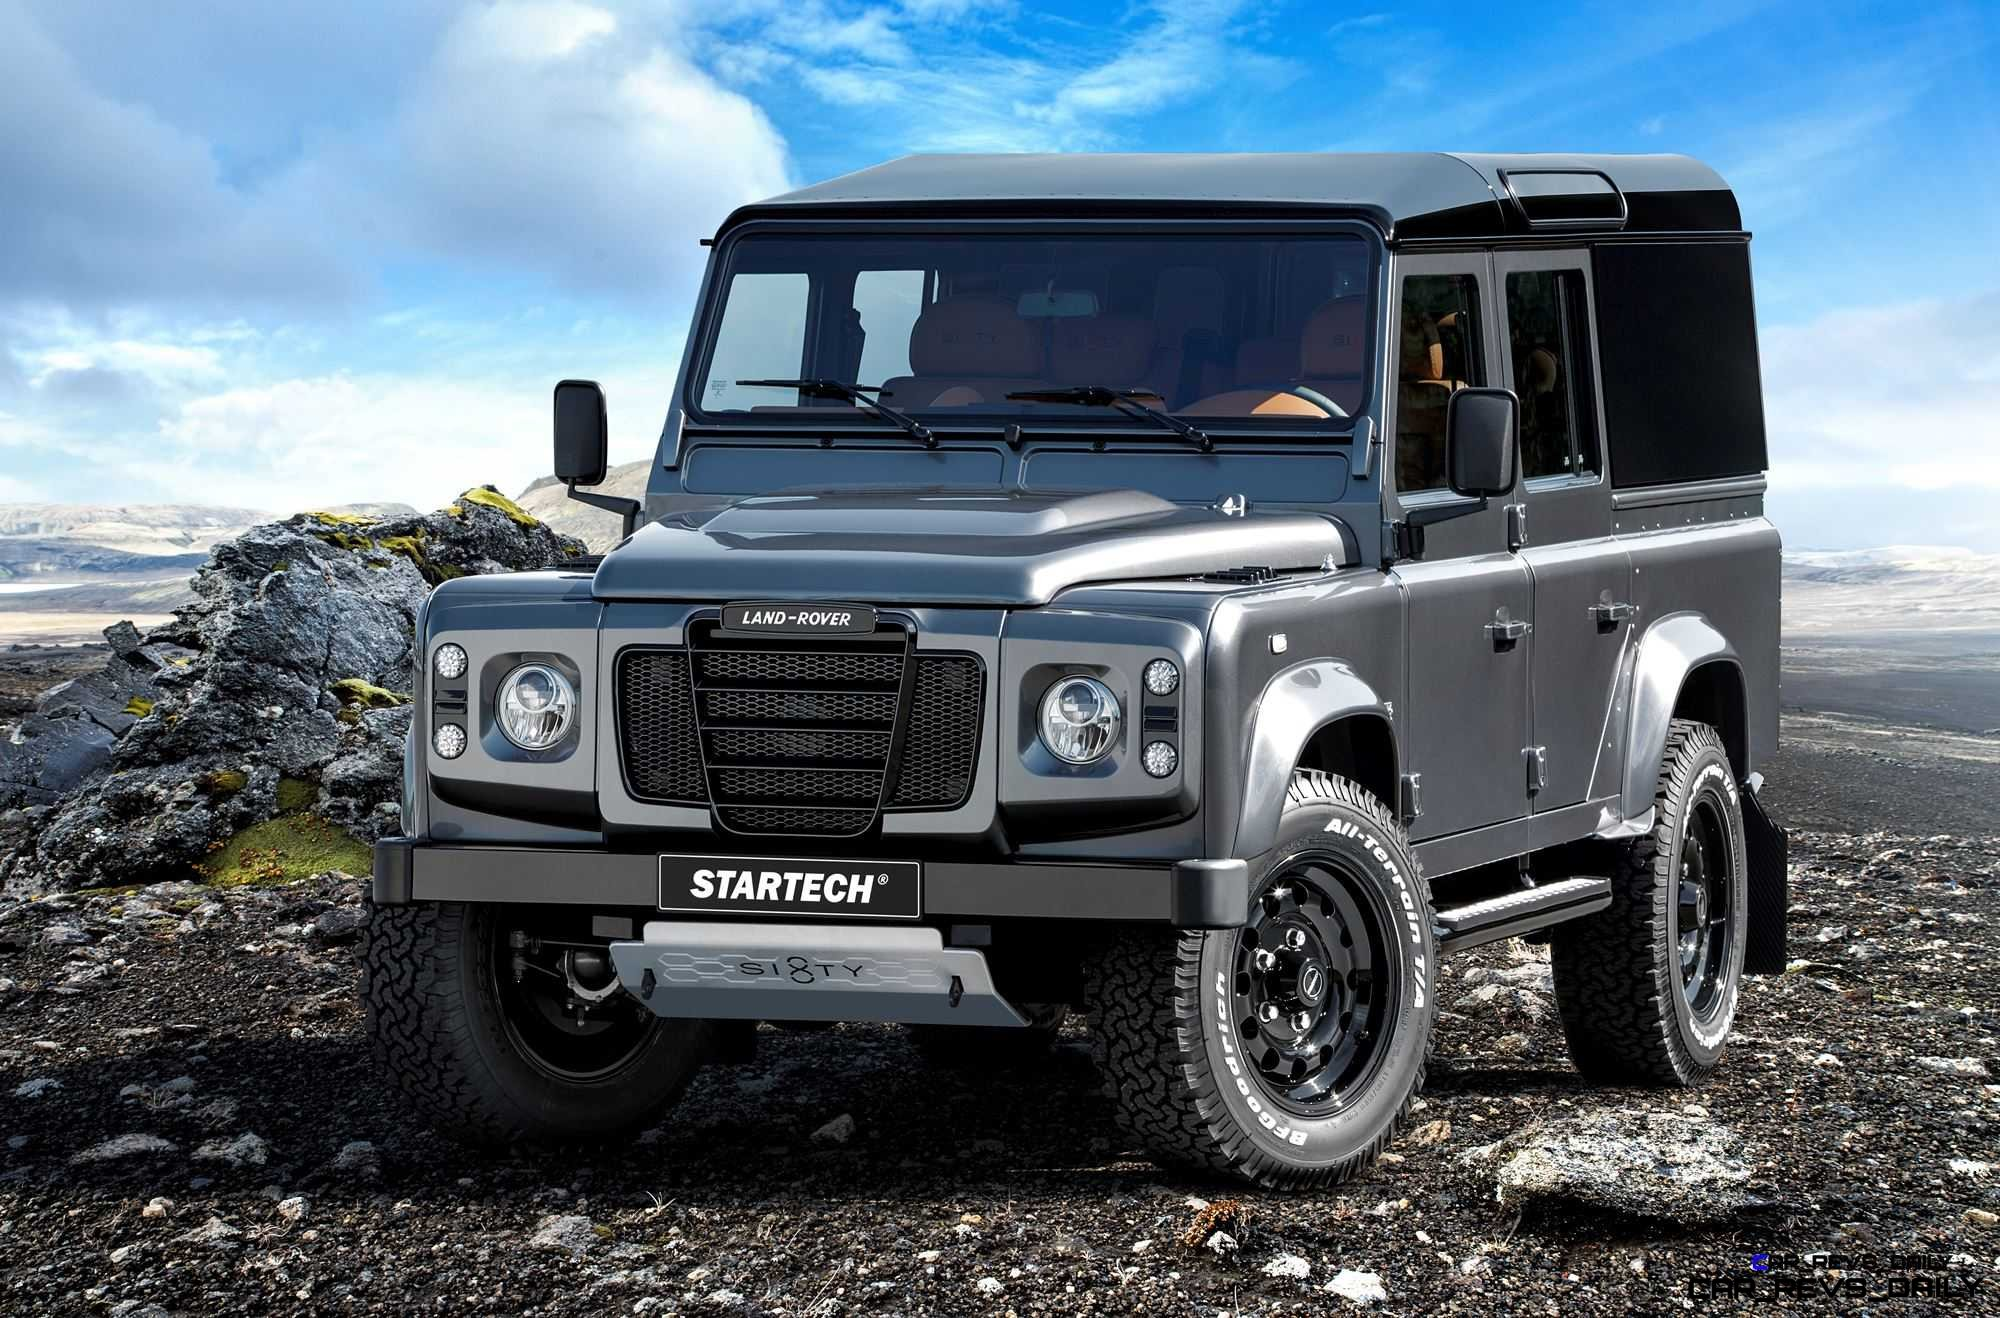 BRABUS STARTECH SIXTY8 Is Land Rover Defender 110 Sendoff Special